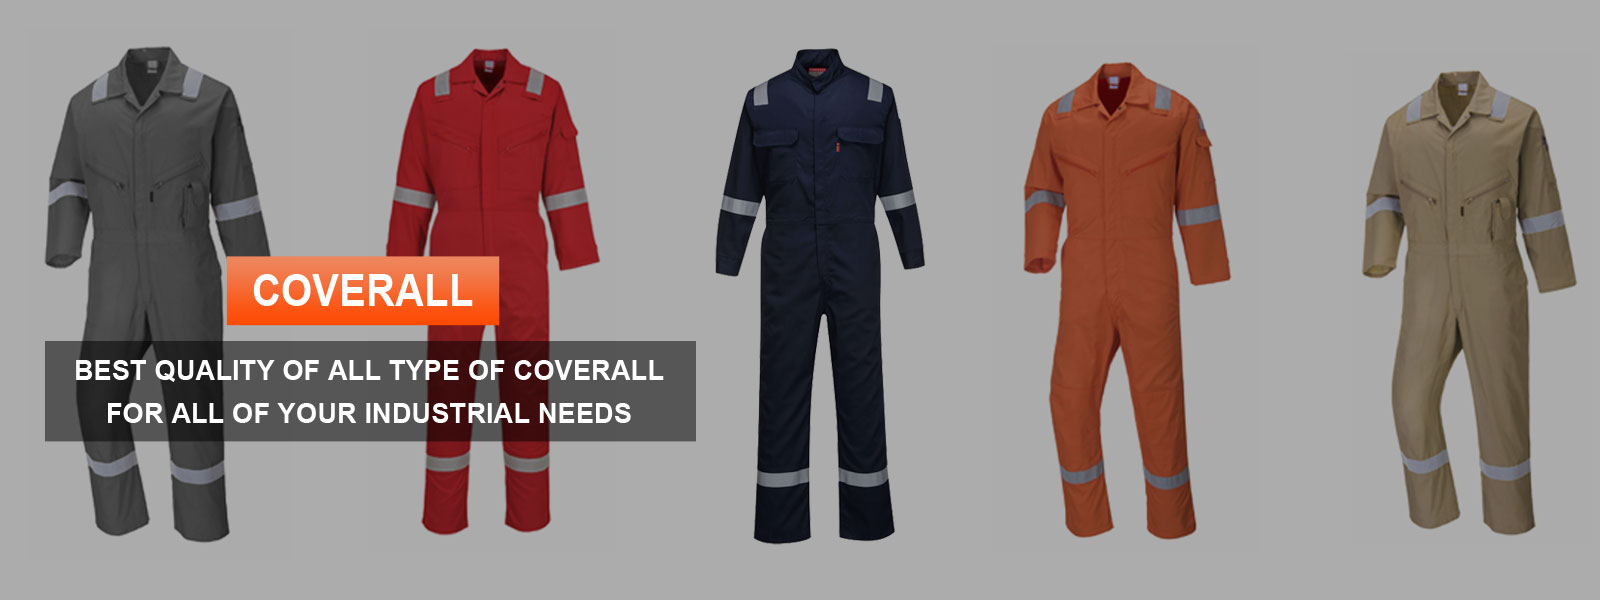 Coverall Manufacturers in Lebanon